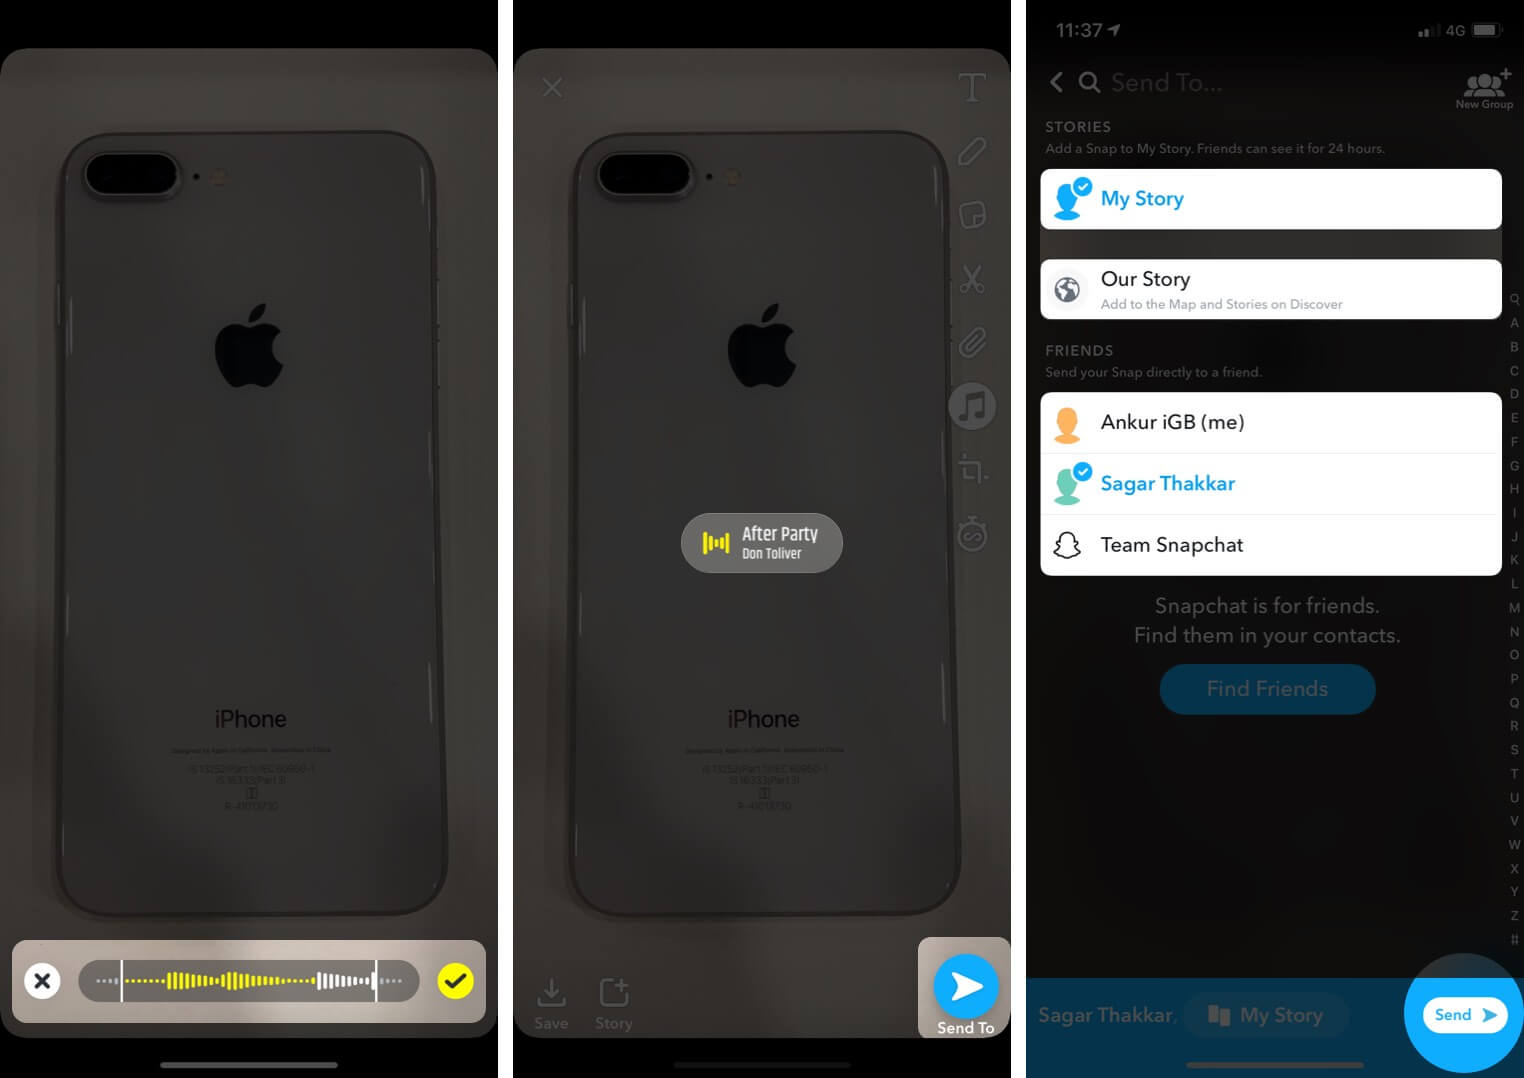 Add Music on Snaps and Stories in Snapchat and Share it from iPhone